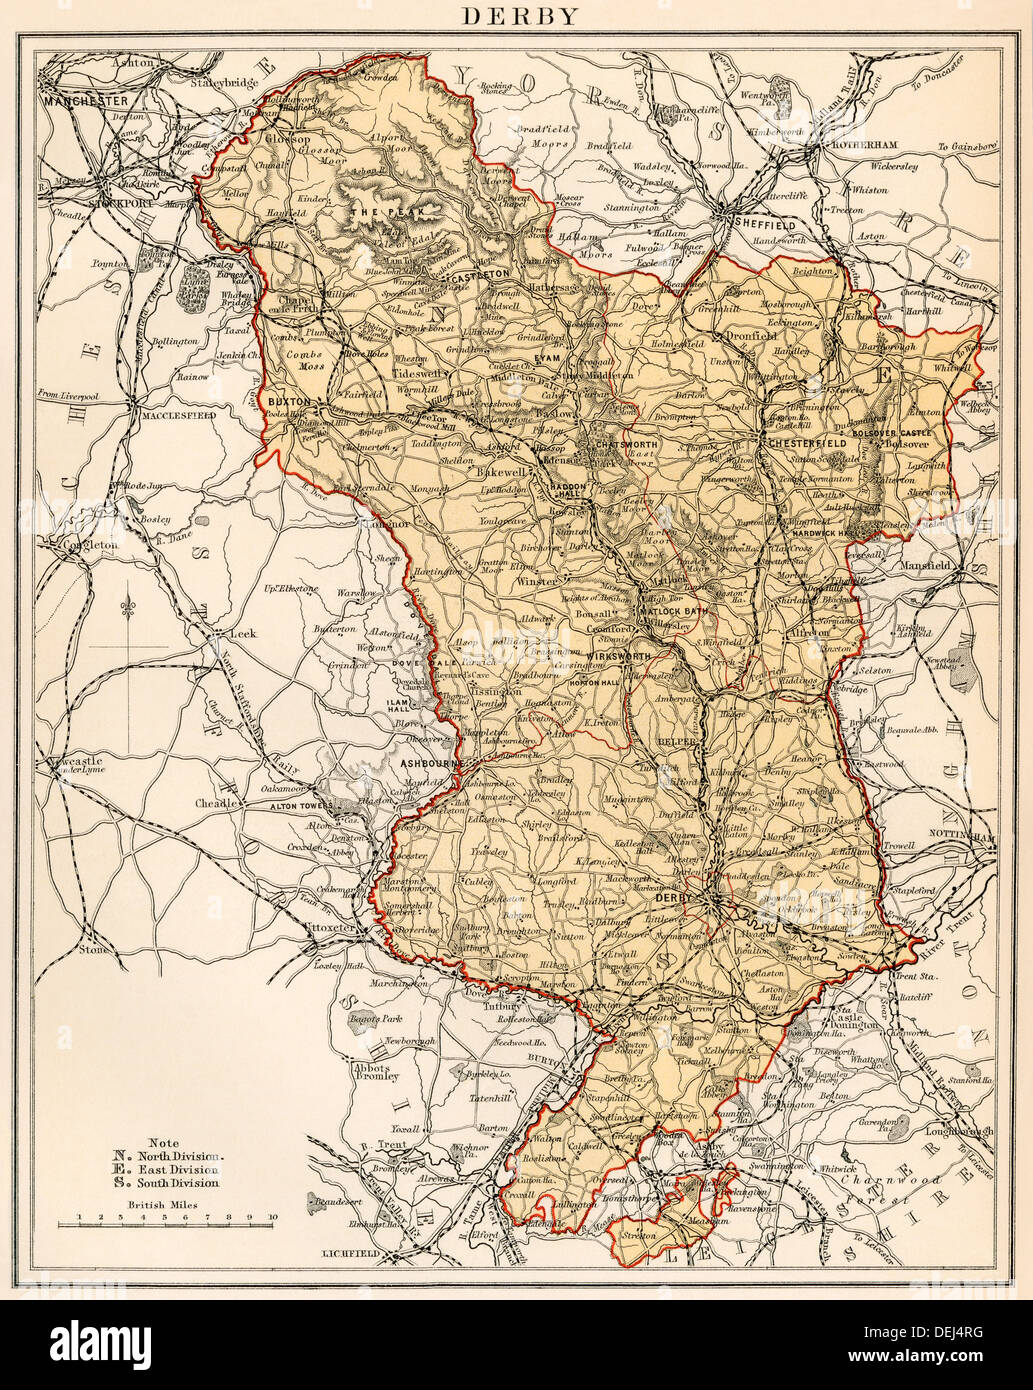 Map Of England Derbyshire.Map Of Derbyshire England 1870s Color Lithograph Stock Photo